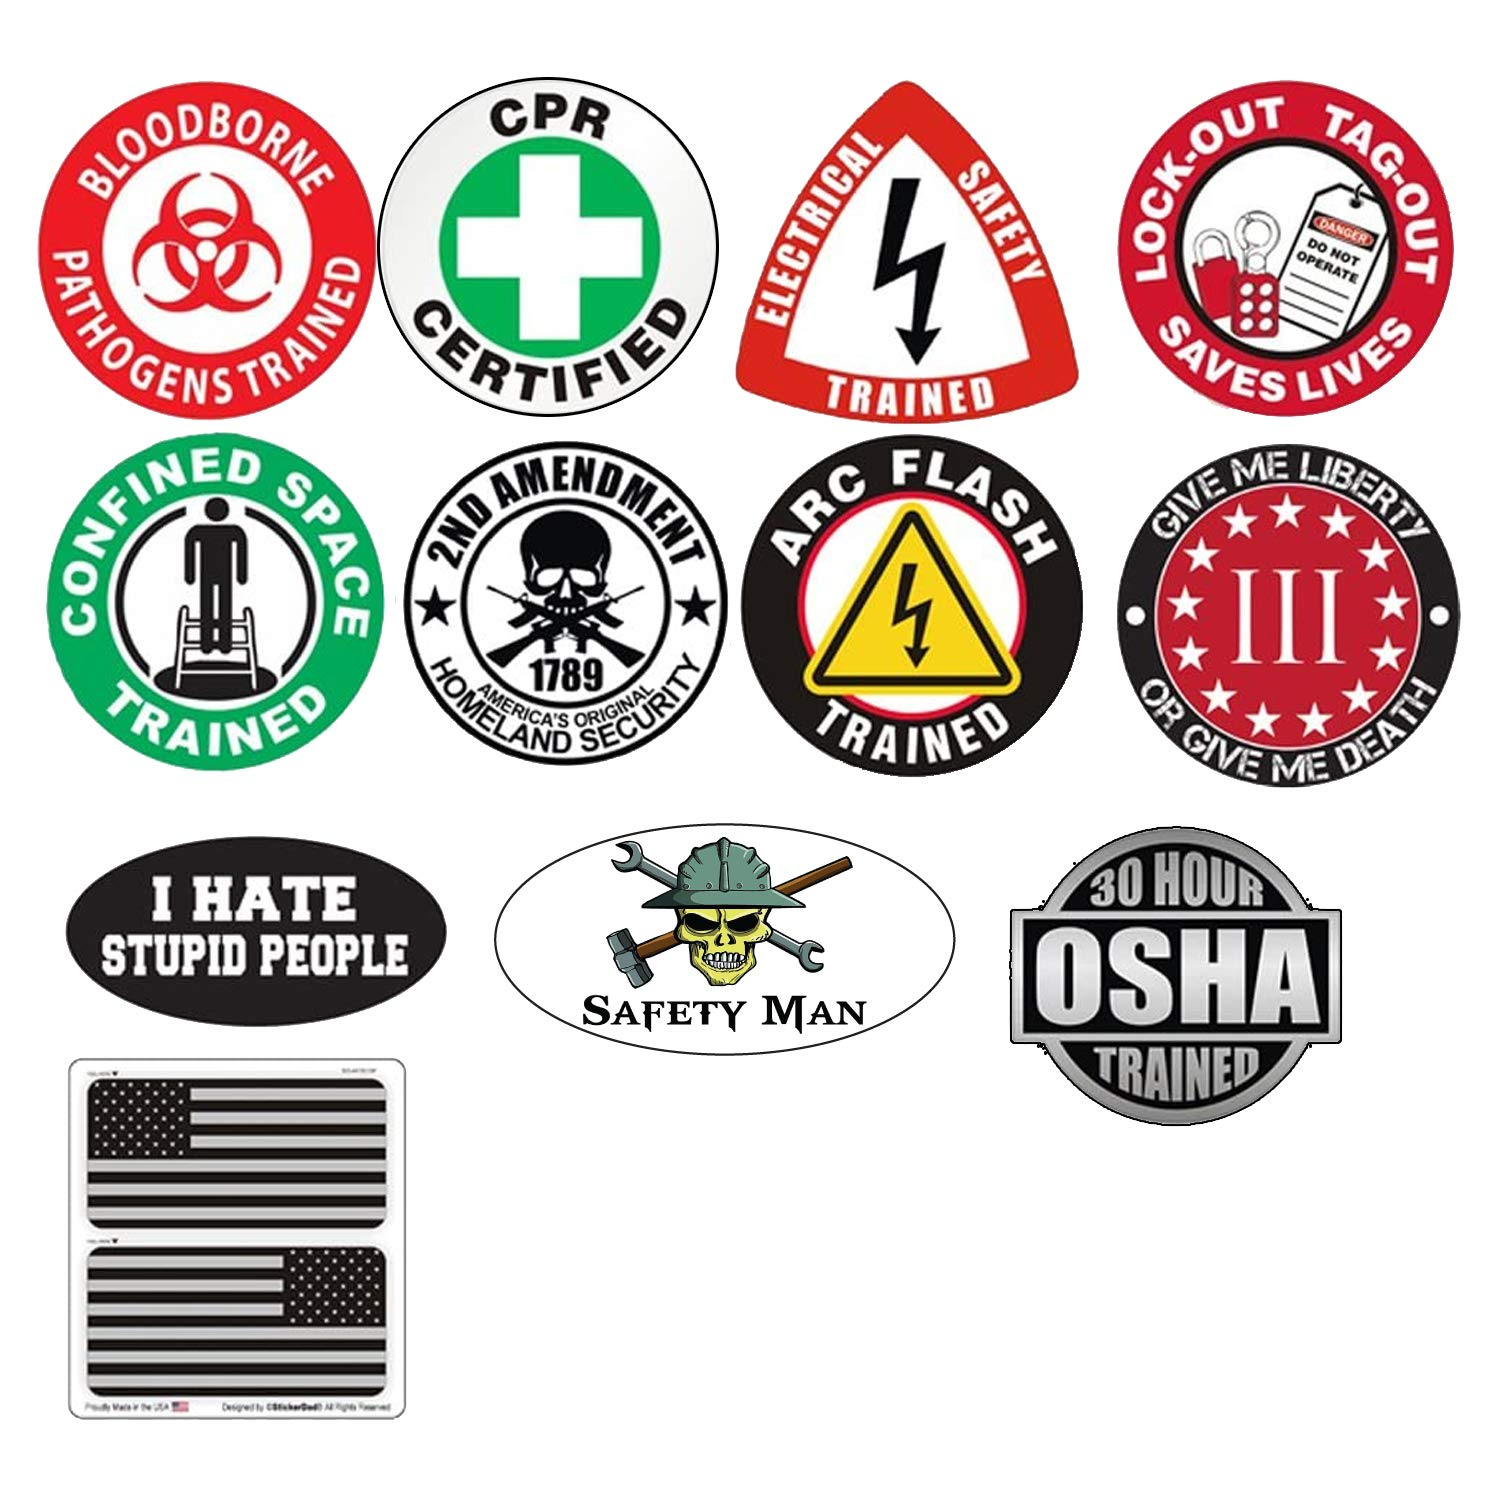 Helmet Sticker BUNDLE 21918 (12 Stickers Included) Full Color Printed by StickerDad - Hard Hat, Helmet, Windows, Walls, Bumpers, Laptop, Lockers, etc.